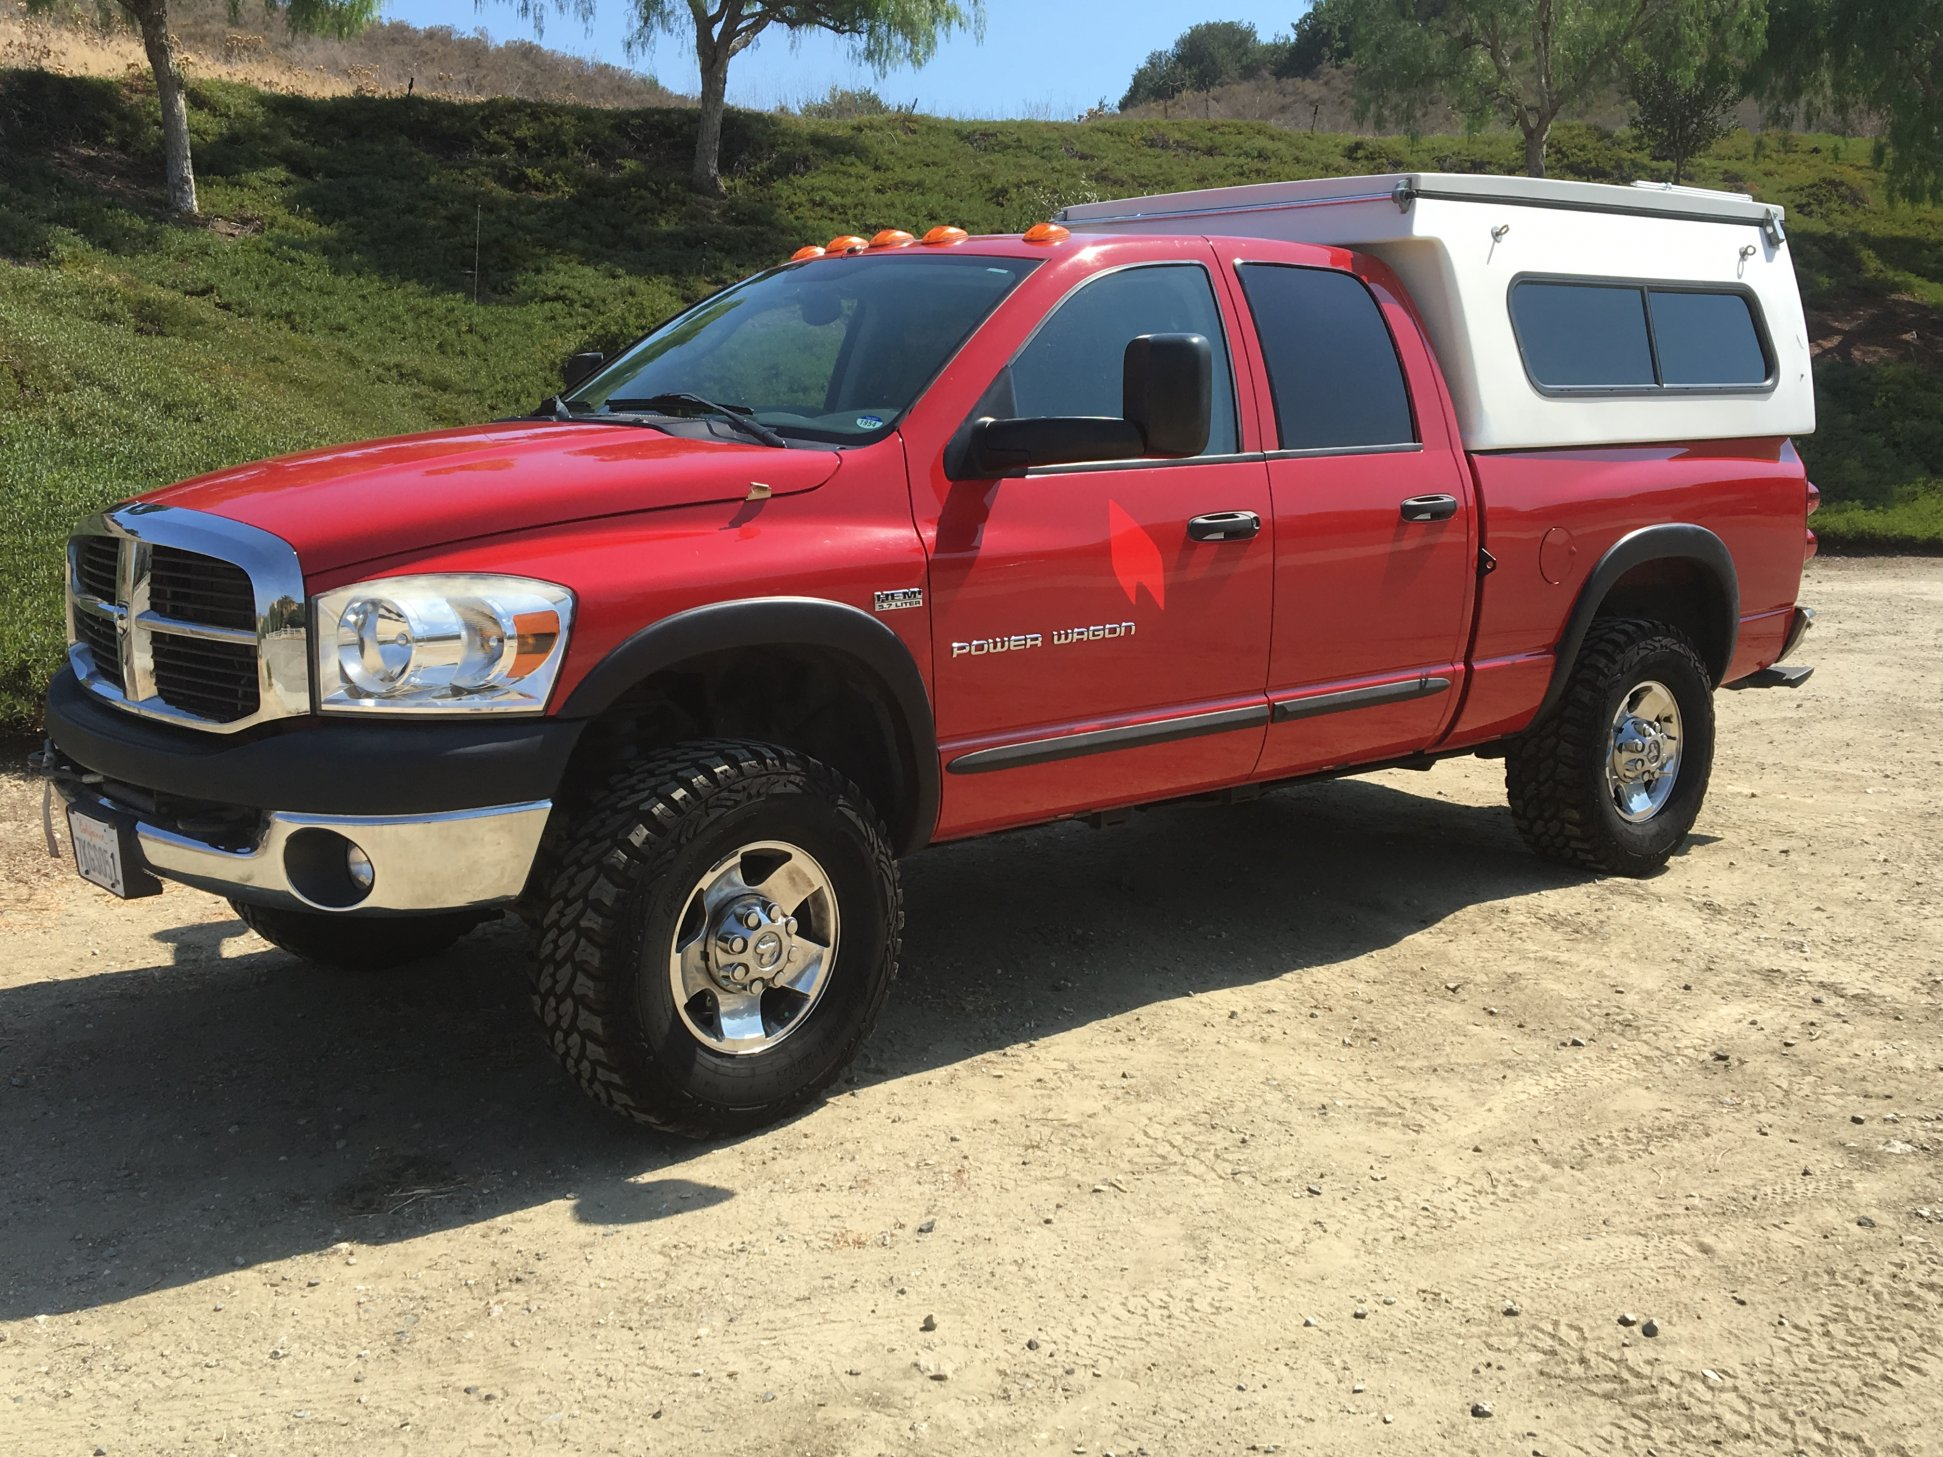 2008 Dodge Power Wagon FLIP PAC Camper FOR SALE $23 000